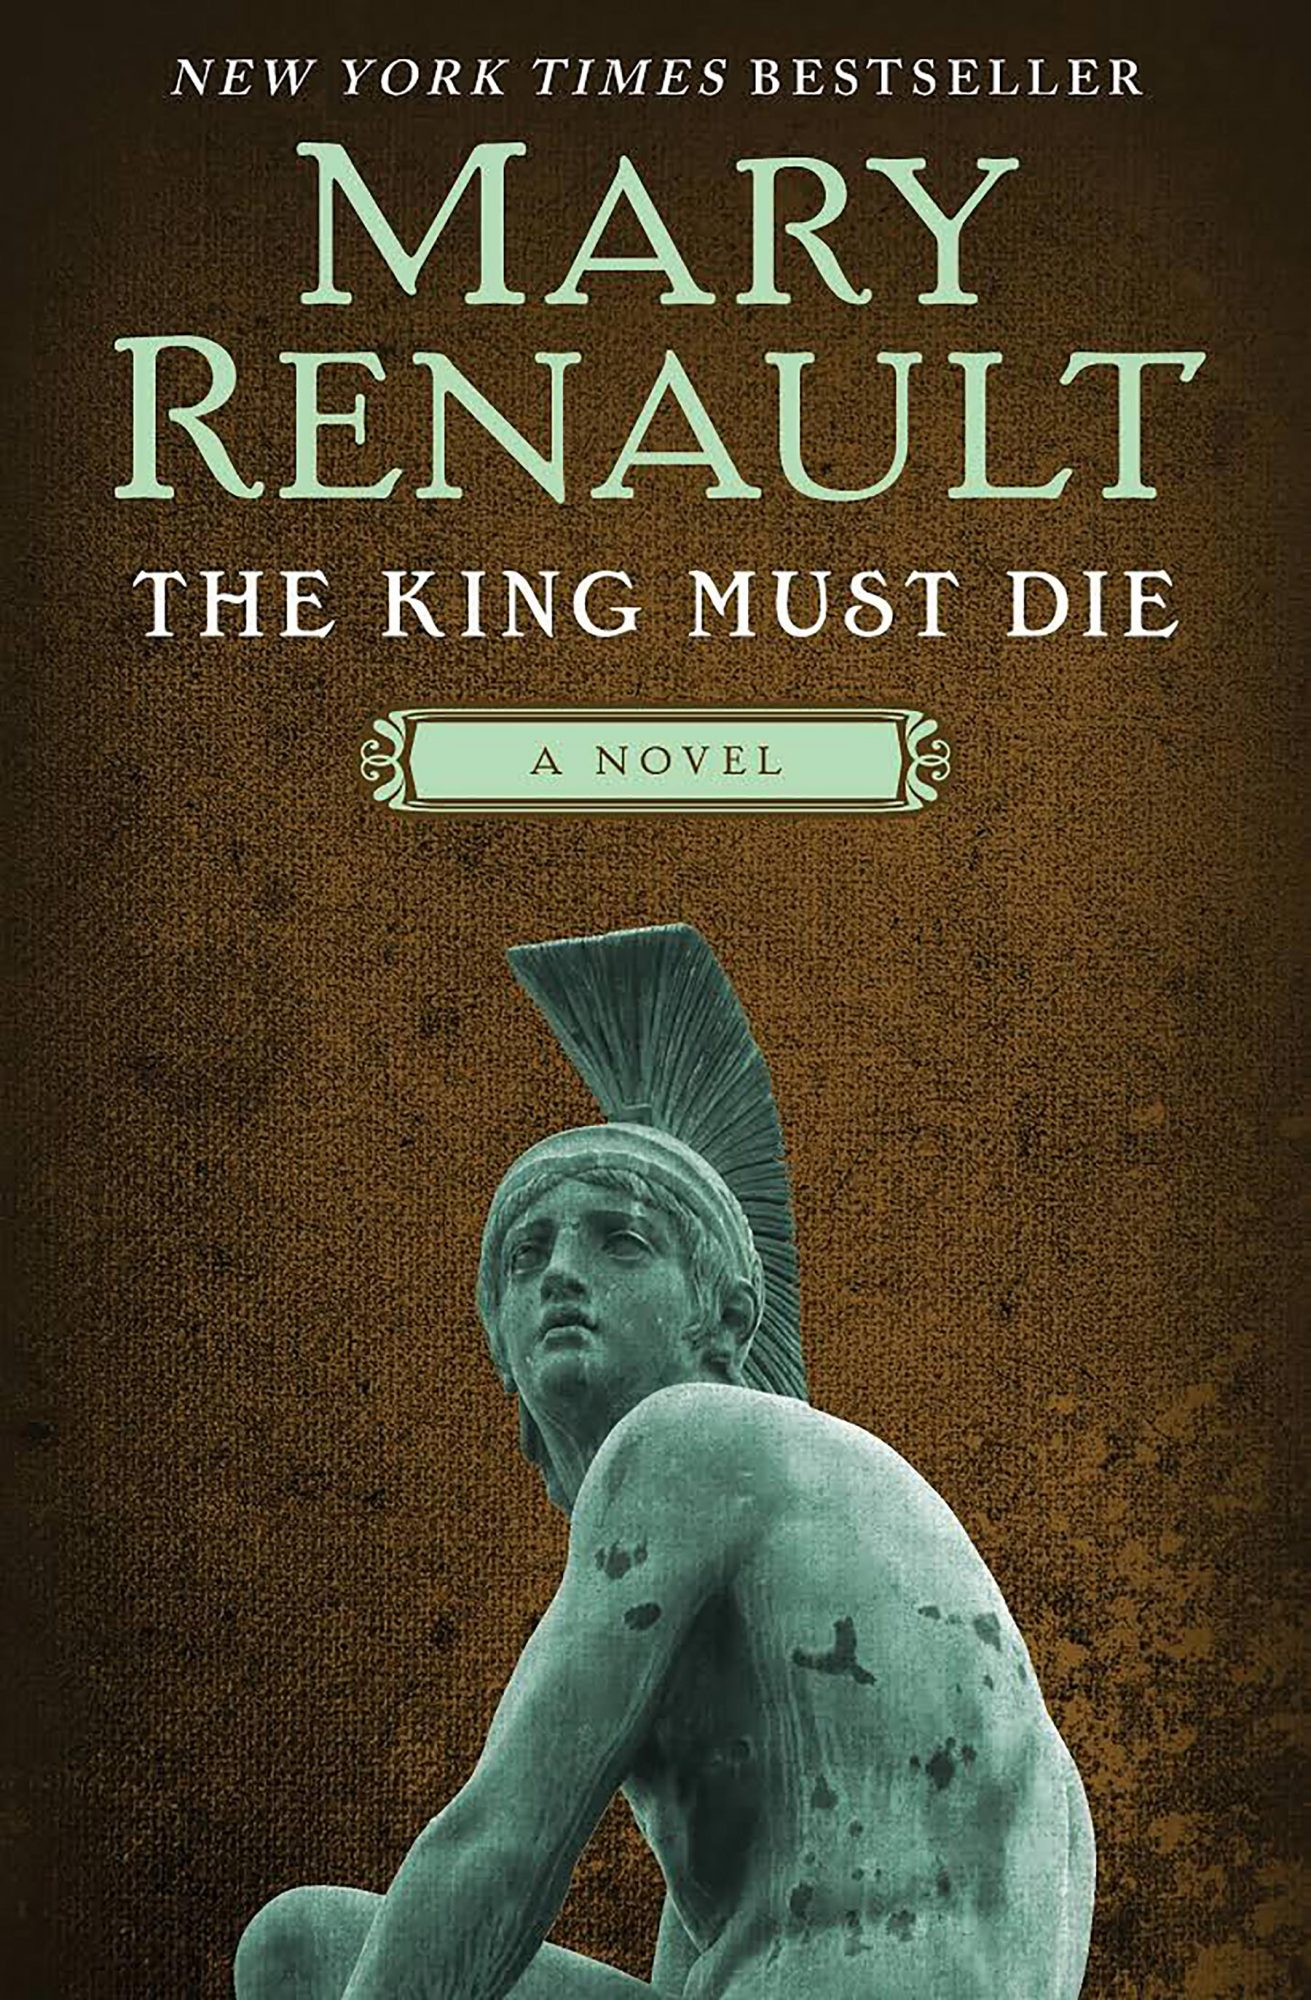 Mary Renault, The King Must Die